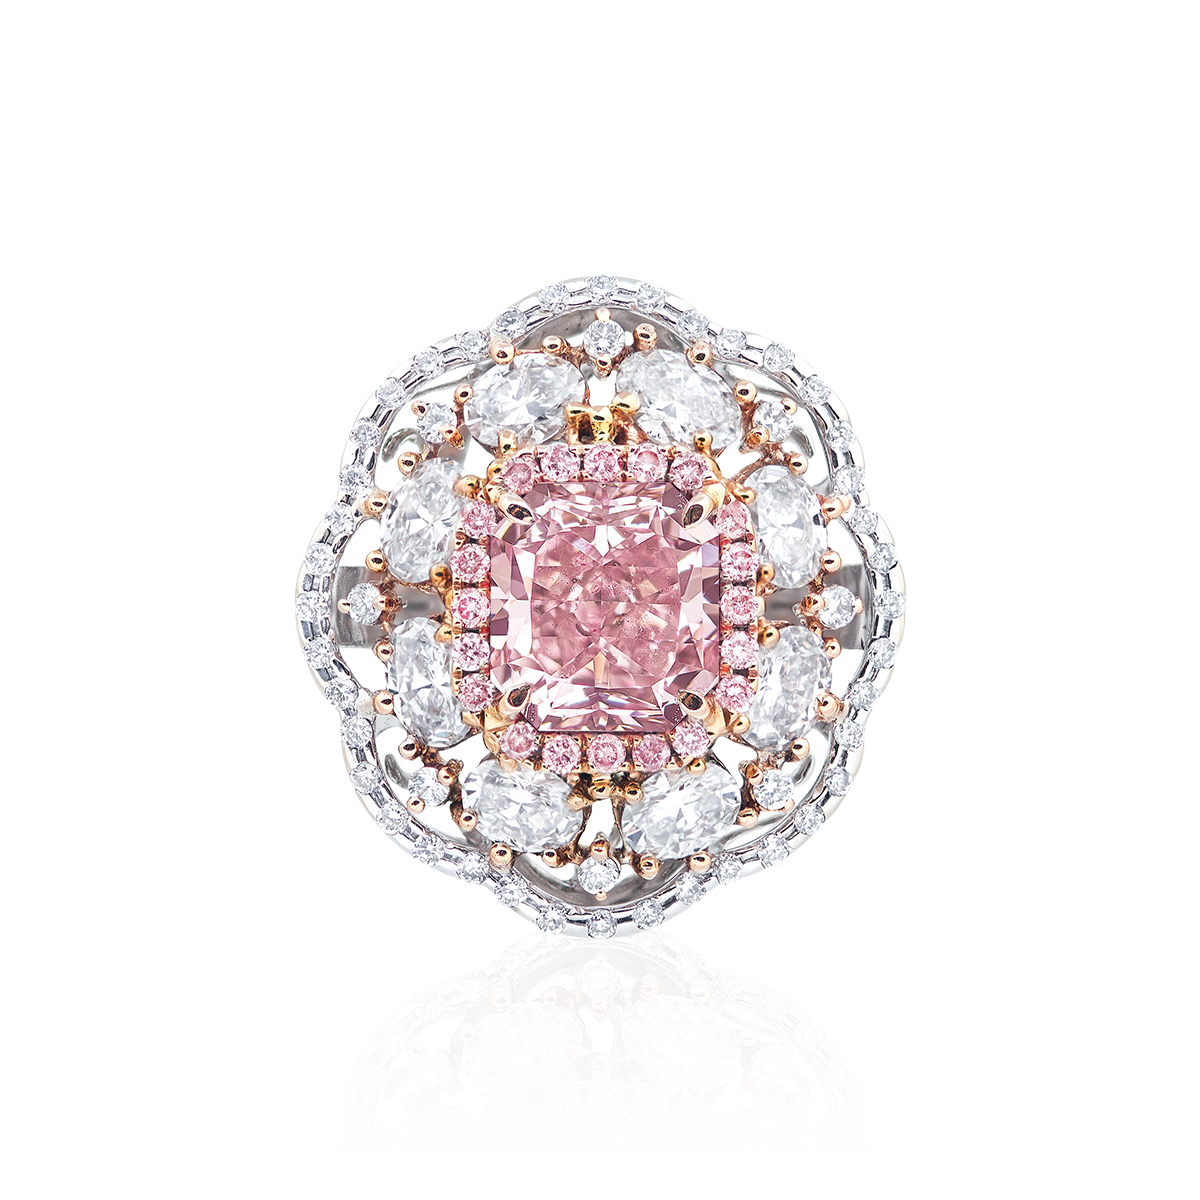 GIA 2.52克拉 無瑕淡彩棕粉鑽戒